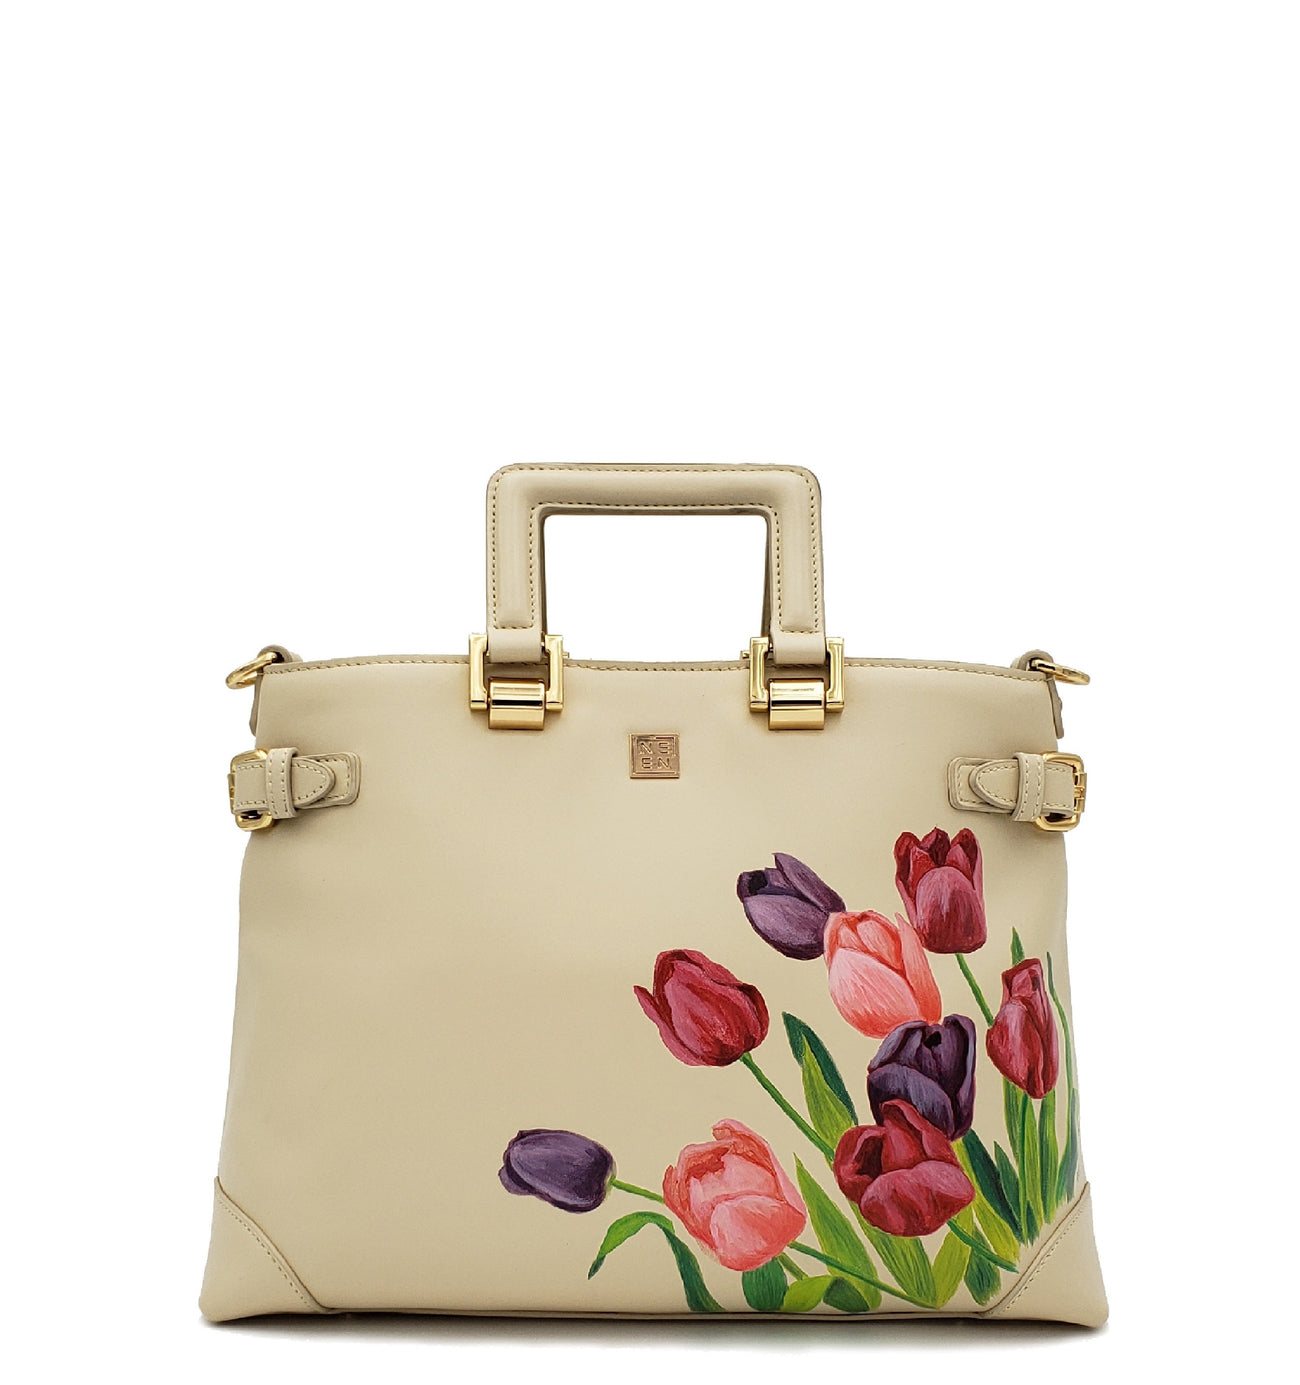 Tulip Bag - Customized Order Only